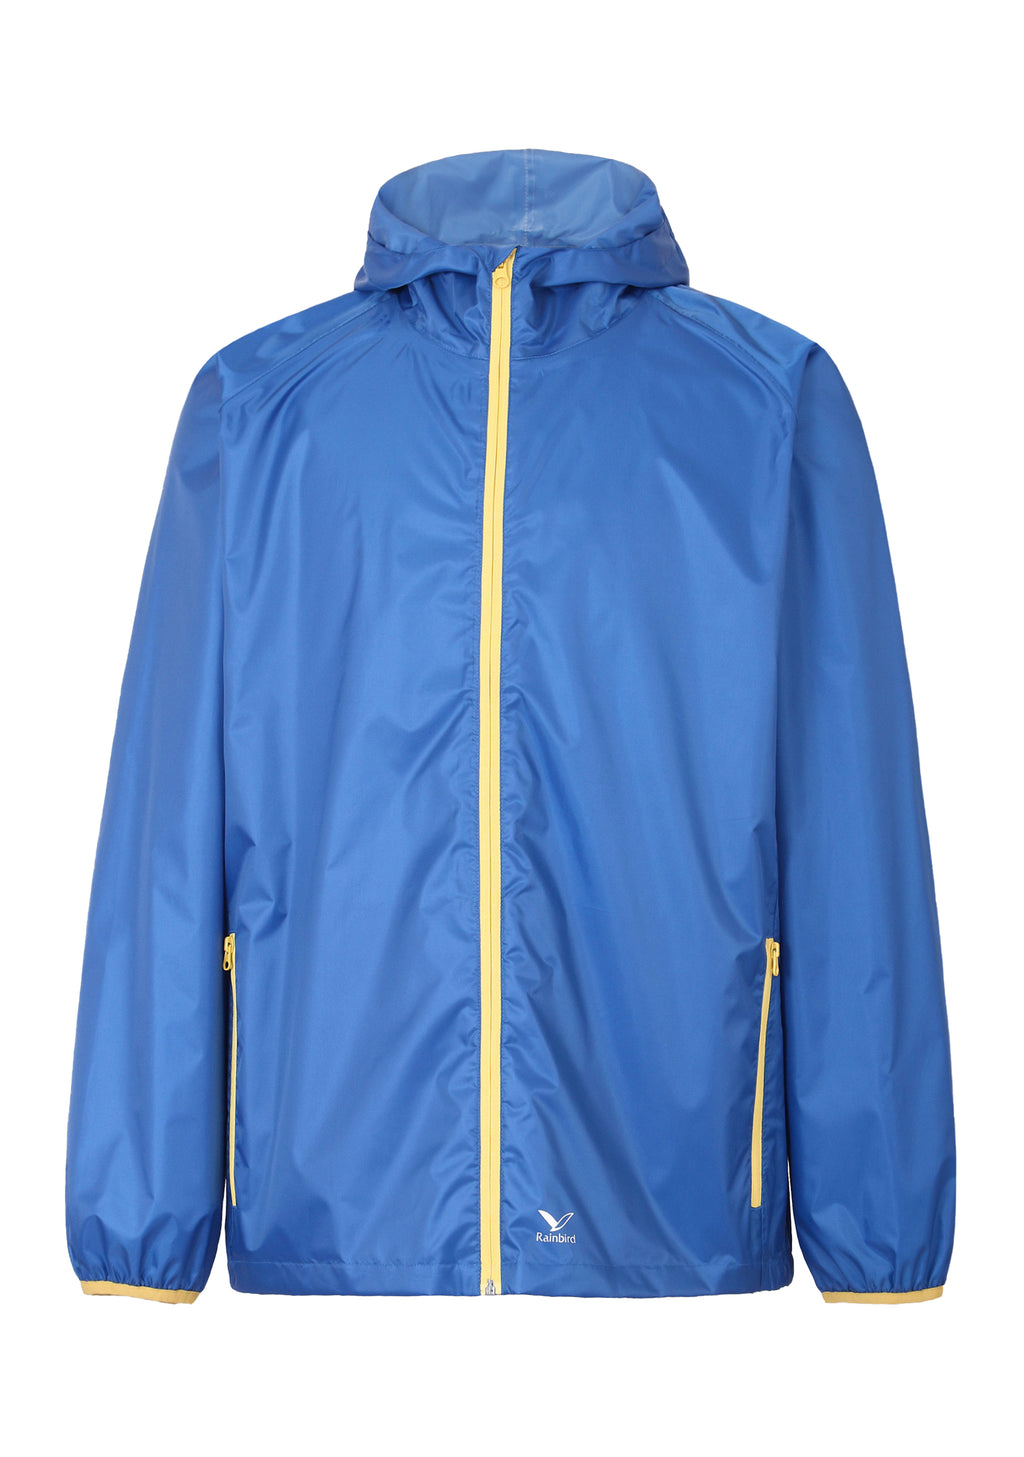 RAINBIRD UNISEX ADULTS GOSTOW RAIN JACKET BLUE/YELLOW <BR> 8531